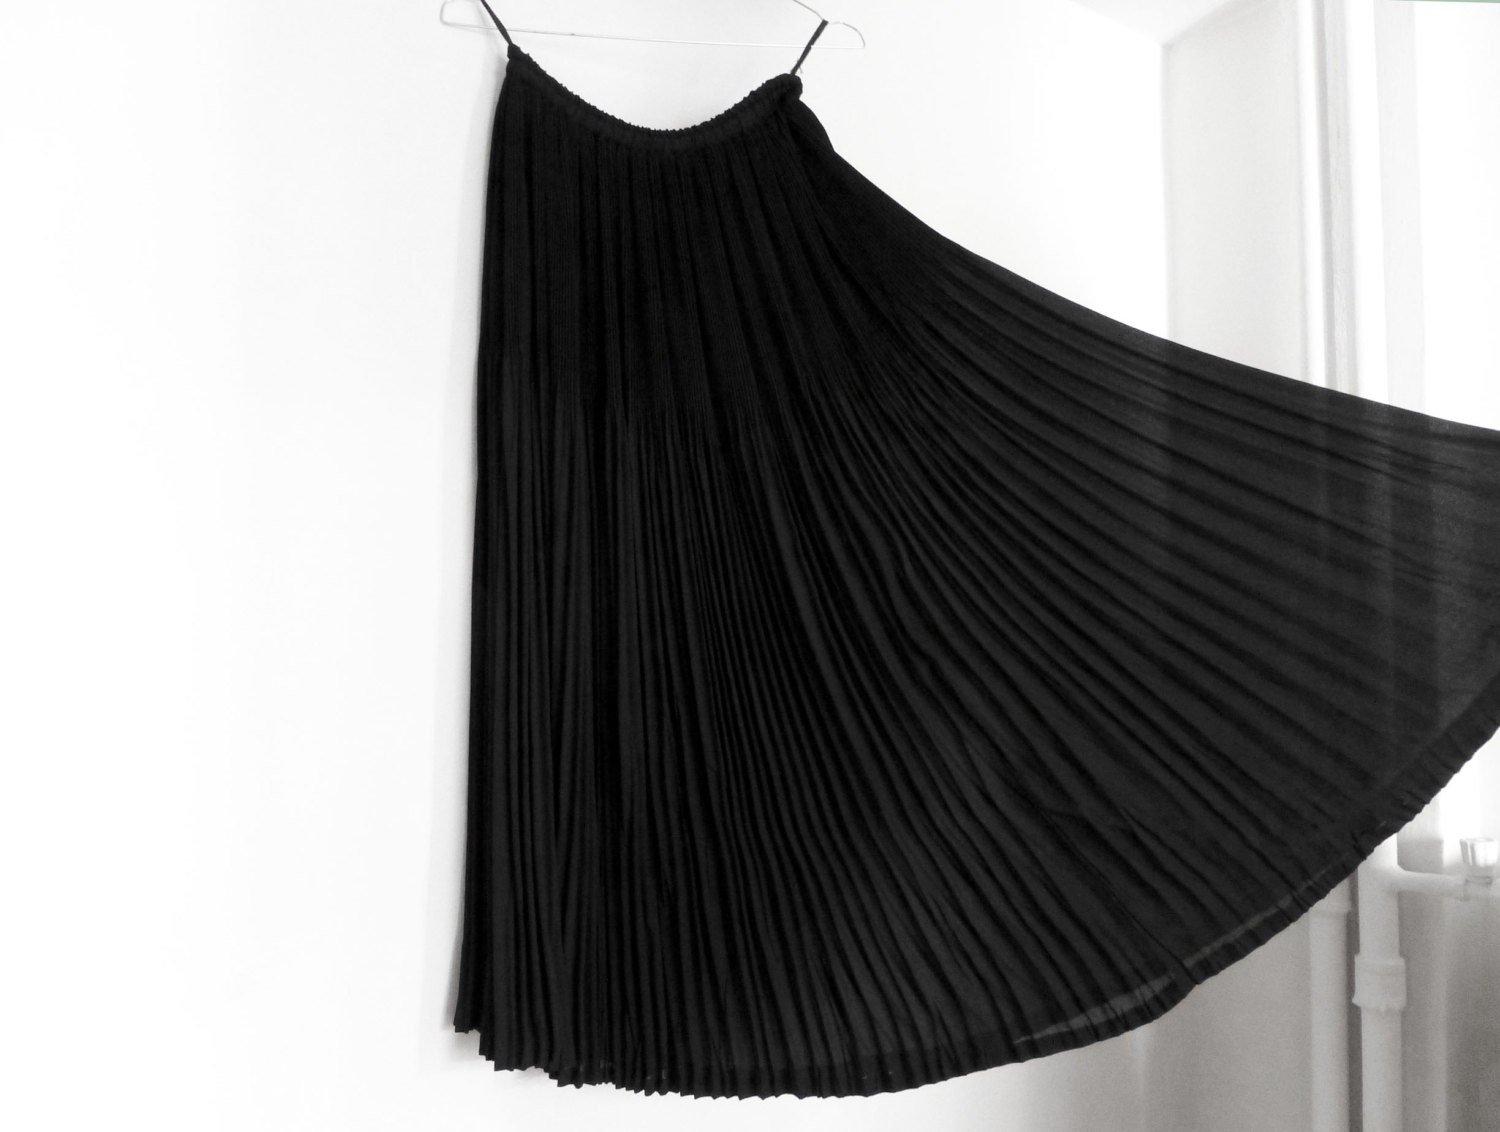 Vintage 1980s Black Long Skirt / Elegant Chic / Gothic - vintagesolo